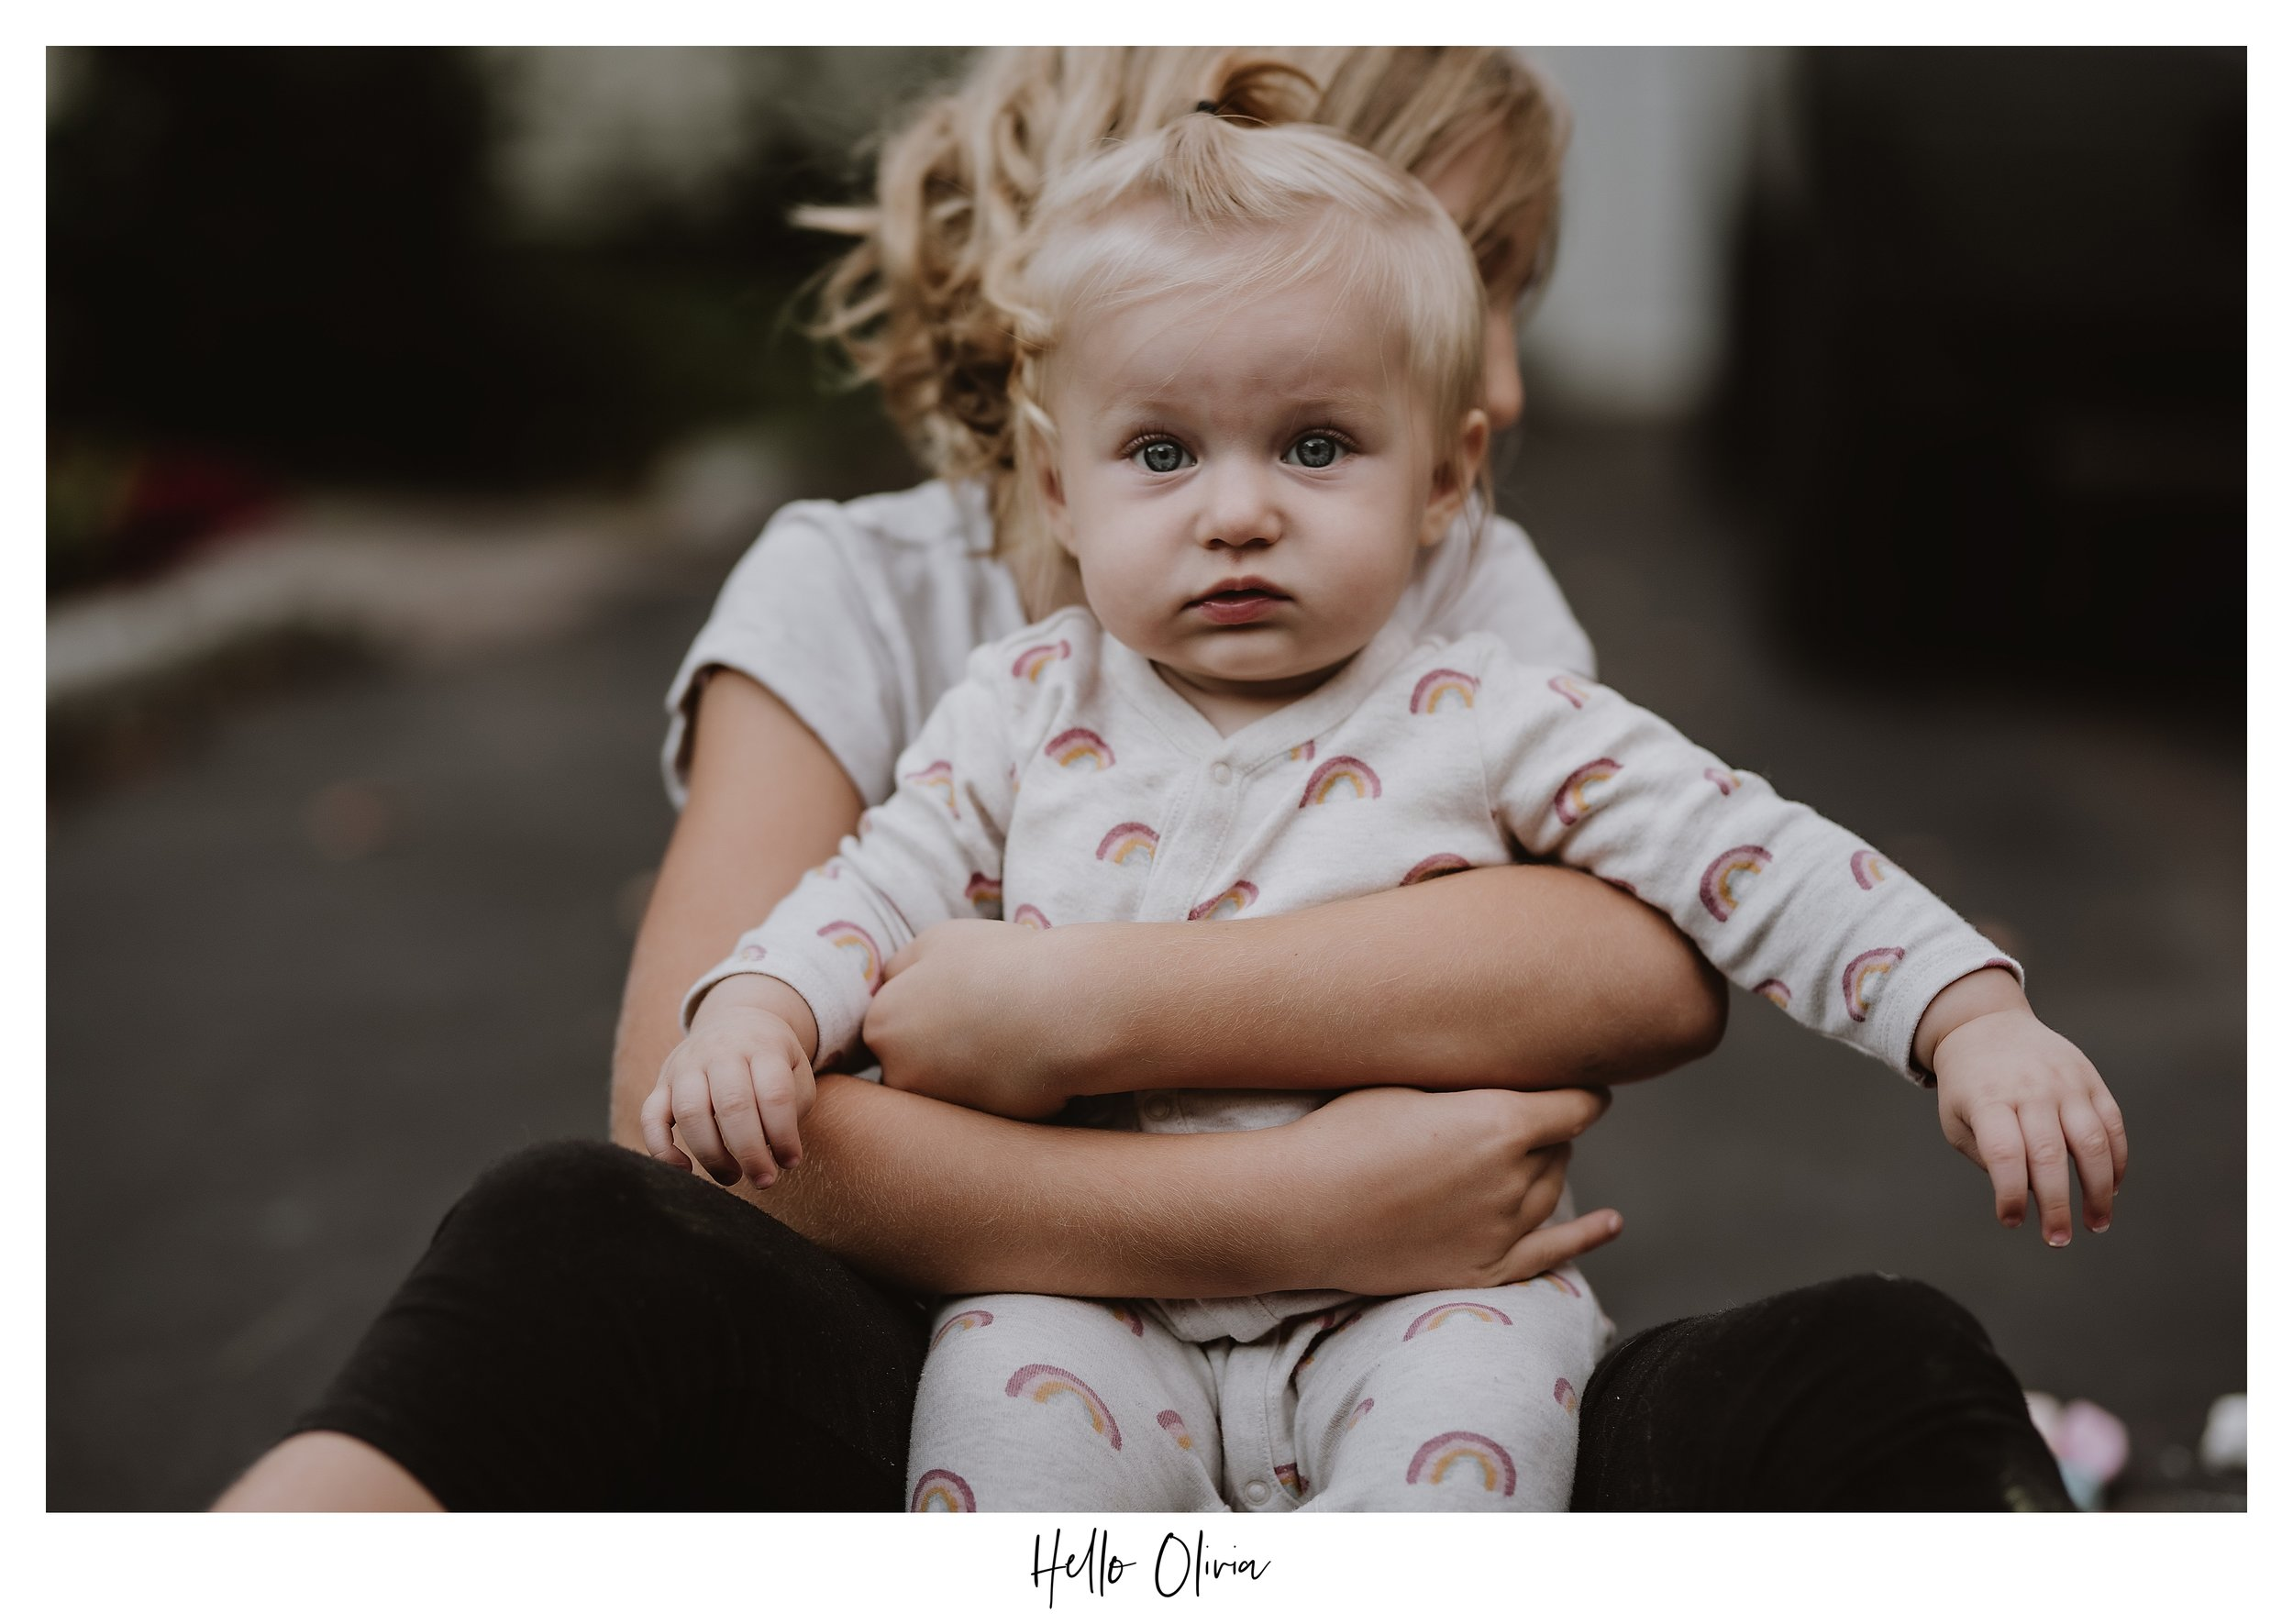 Hello-olivia-photography-Hamptons-Greenport-Port-Jefferson-Babylon-Long-Island-Islip-Sayville-Port-Washington-Middle-Island-ridge-wading-river-riverhead-blue-point-bayport-children-family-photo-session-mini-photos-kids-session_0097.jpg